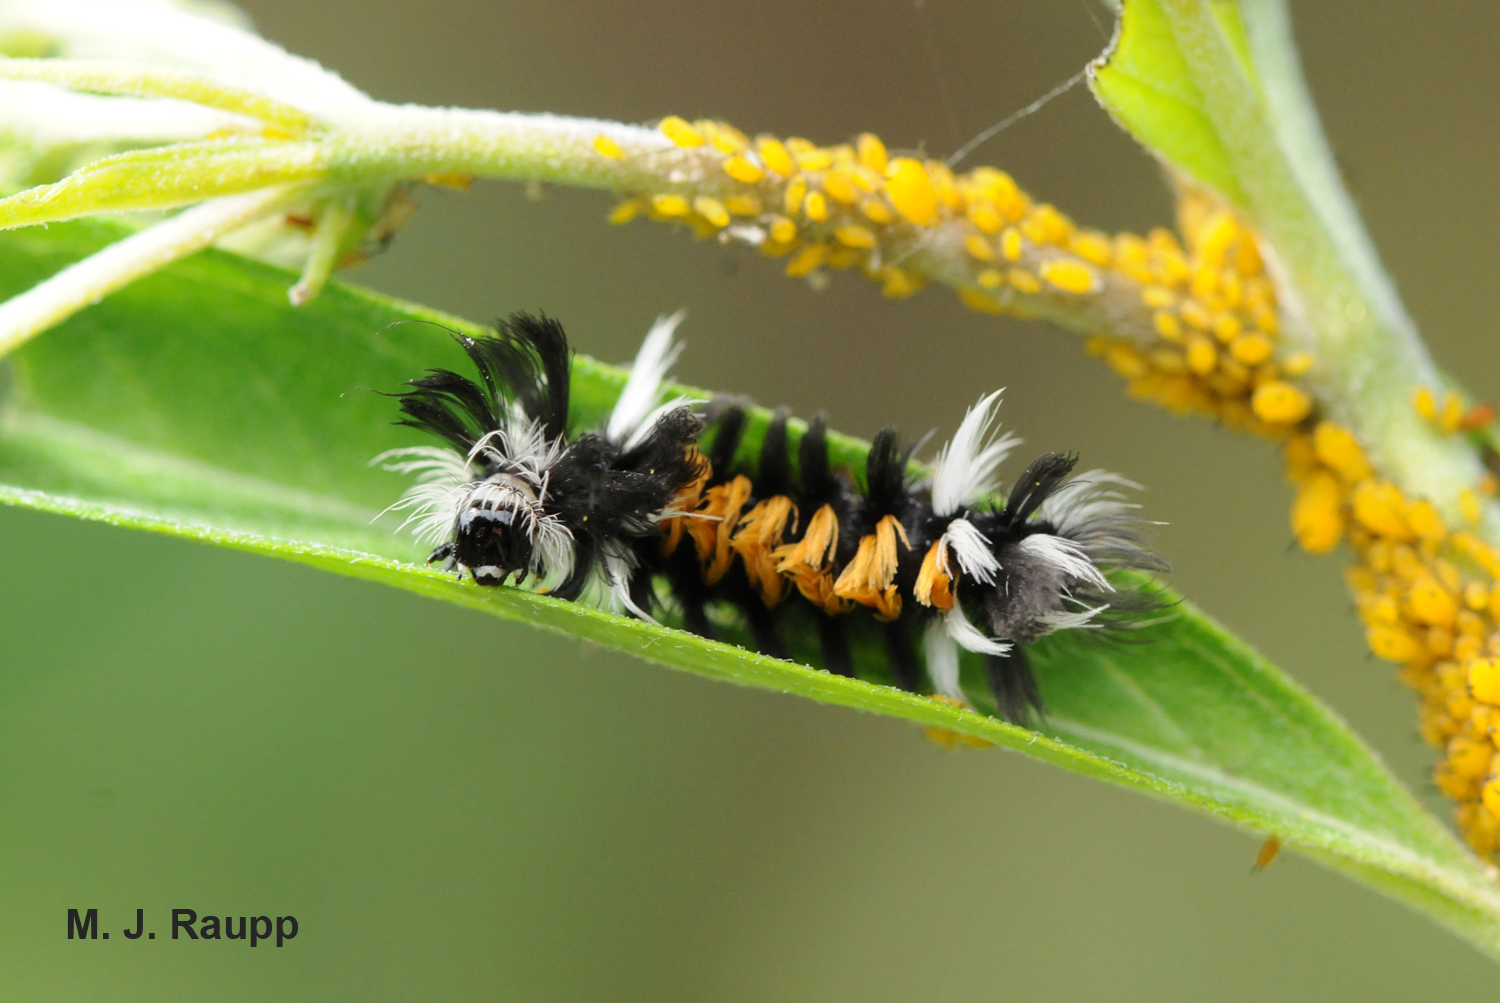 "800x600       Hairy caterpillars of the milkweed tussock moth resemble ""Cousin It"" as they feed on leaves of milkweed.        Normal   0           false   false   false     EN-US   X-NONE   X-NONE                                  MicrosoftInternetExplorer4                                                                                                                                                                                                                                                                                                                                            /* Style Definitions */  table.MsoNormalTable 	{mso-style-name:""Table Normal""; 	mso-tstyle-rowband-size:0; 	mso-tstyle-colband-size:0; 	mso-style-noshow:yes; 	mso-style-priority:99; 	mso-style-parent:""""; 	mso-padding-alt:0in 5.4pt 0in 5.4pt; 	mso-para-margin:0in; 	mso-para-margin-bottom:.0001pt; 	mso-pagination:widow-orphan; 	font-size:10.0pt; 	font-family:""Times New Roman"",""serif"";}"